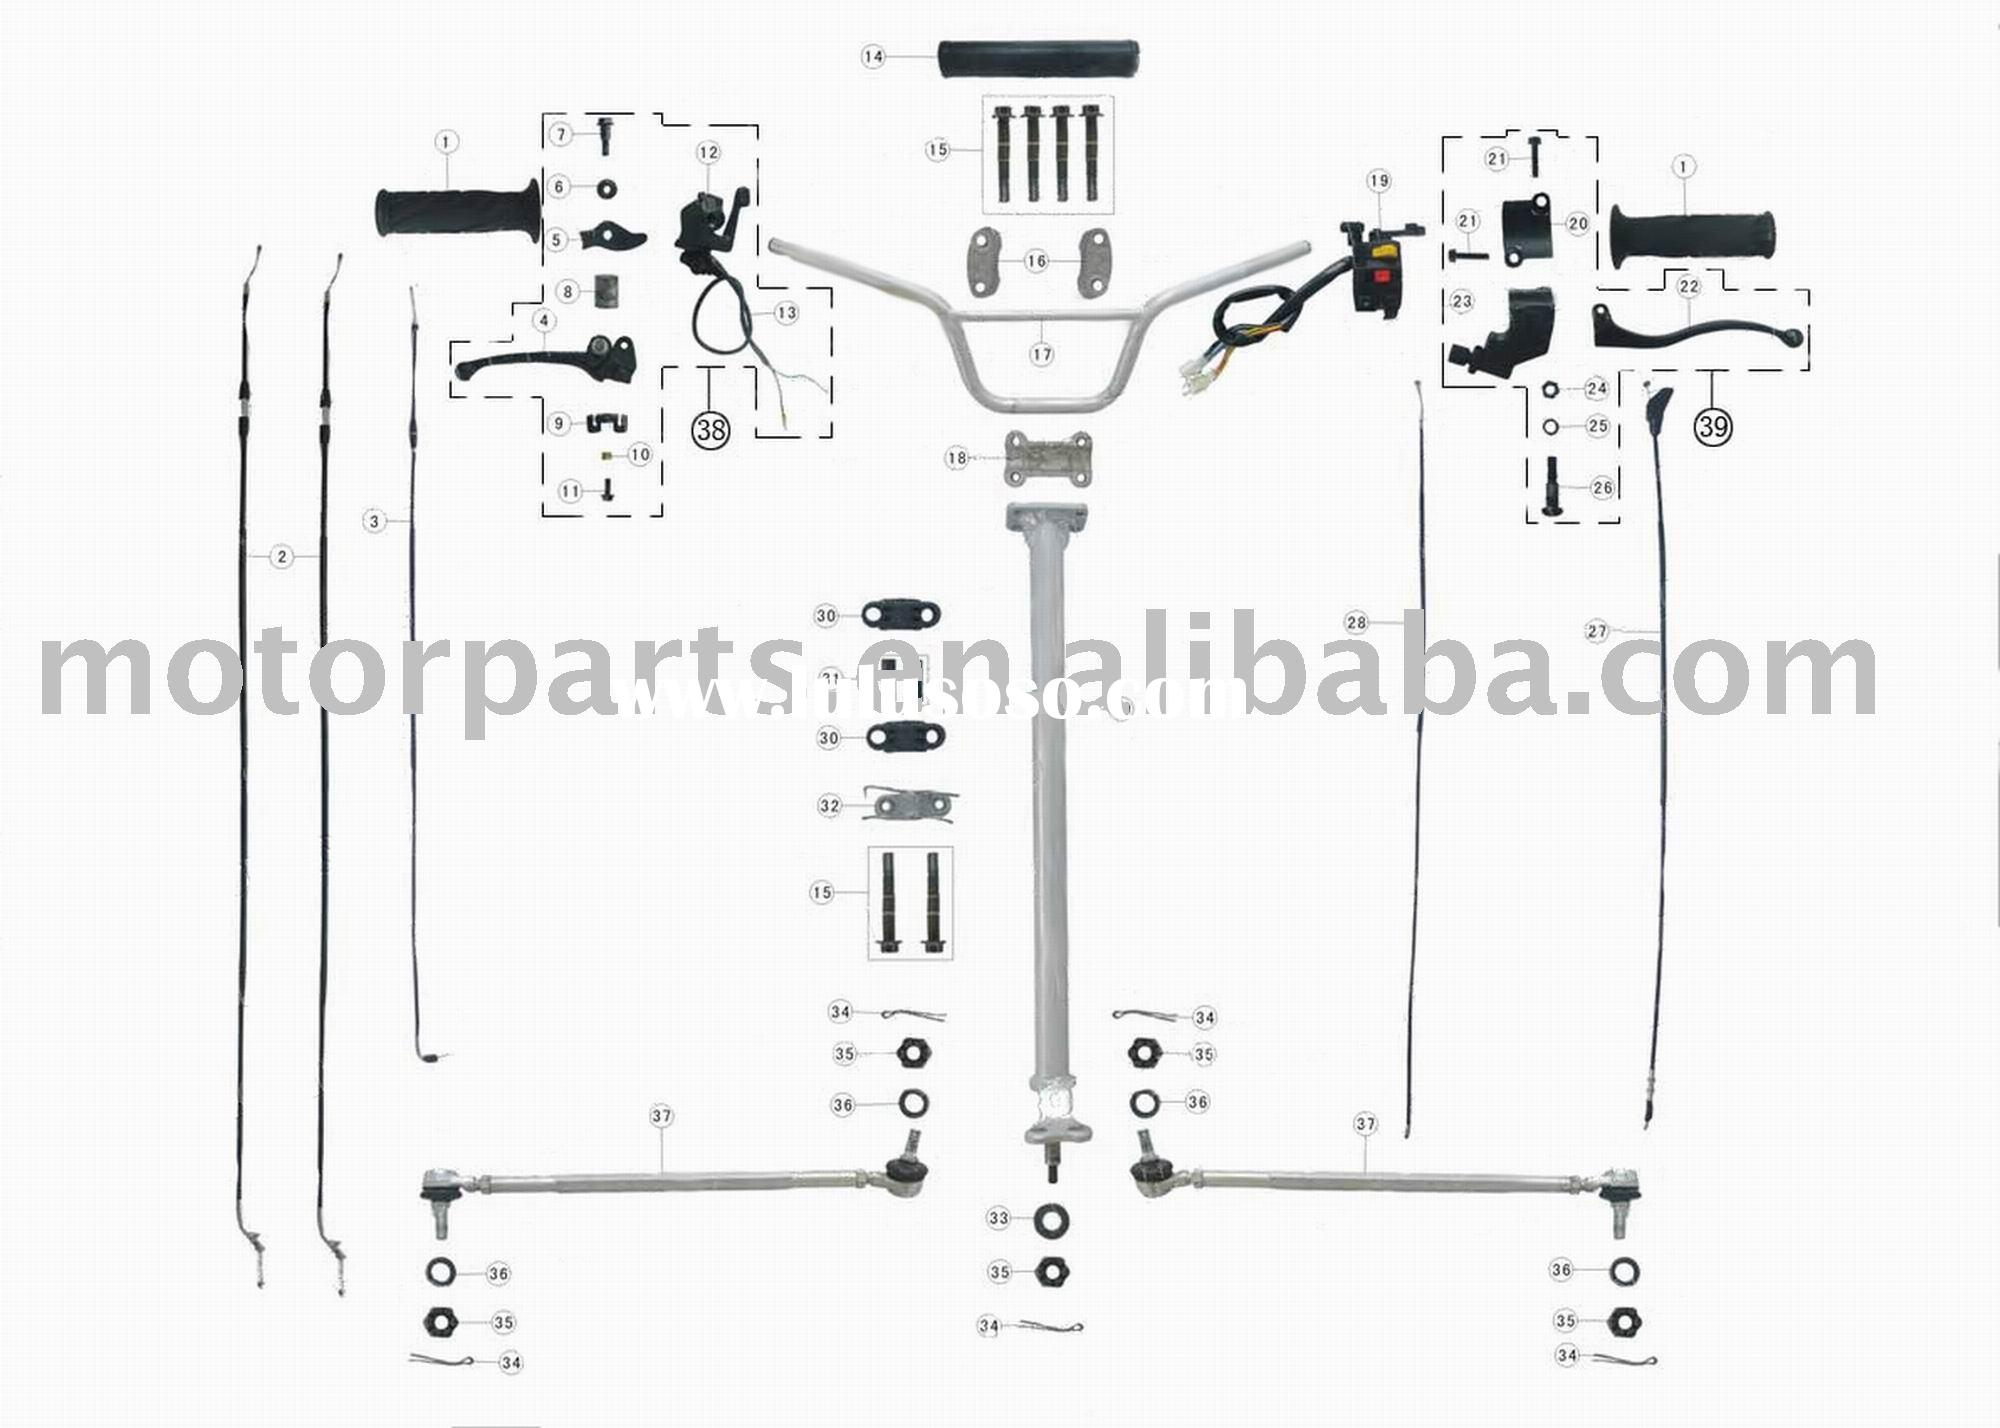 86 cc loncin atv wiring diagram seasons diagram wiring